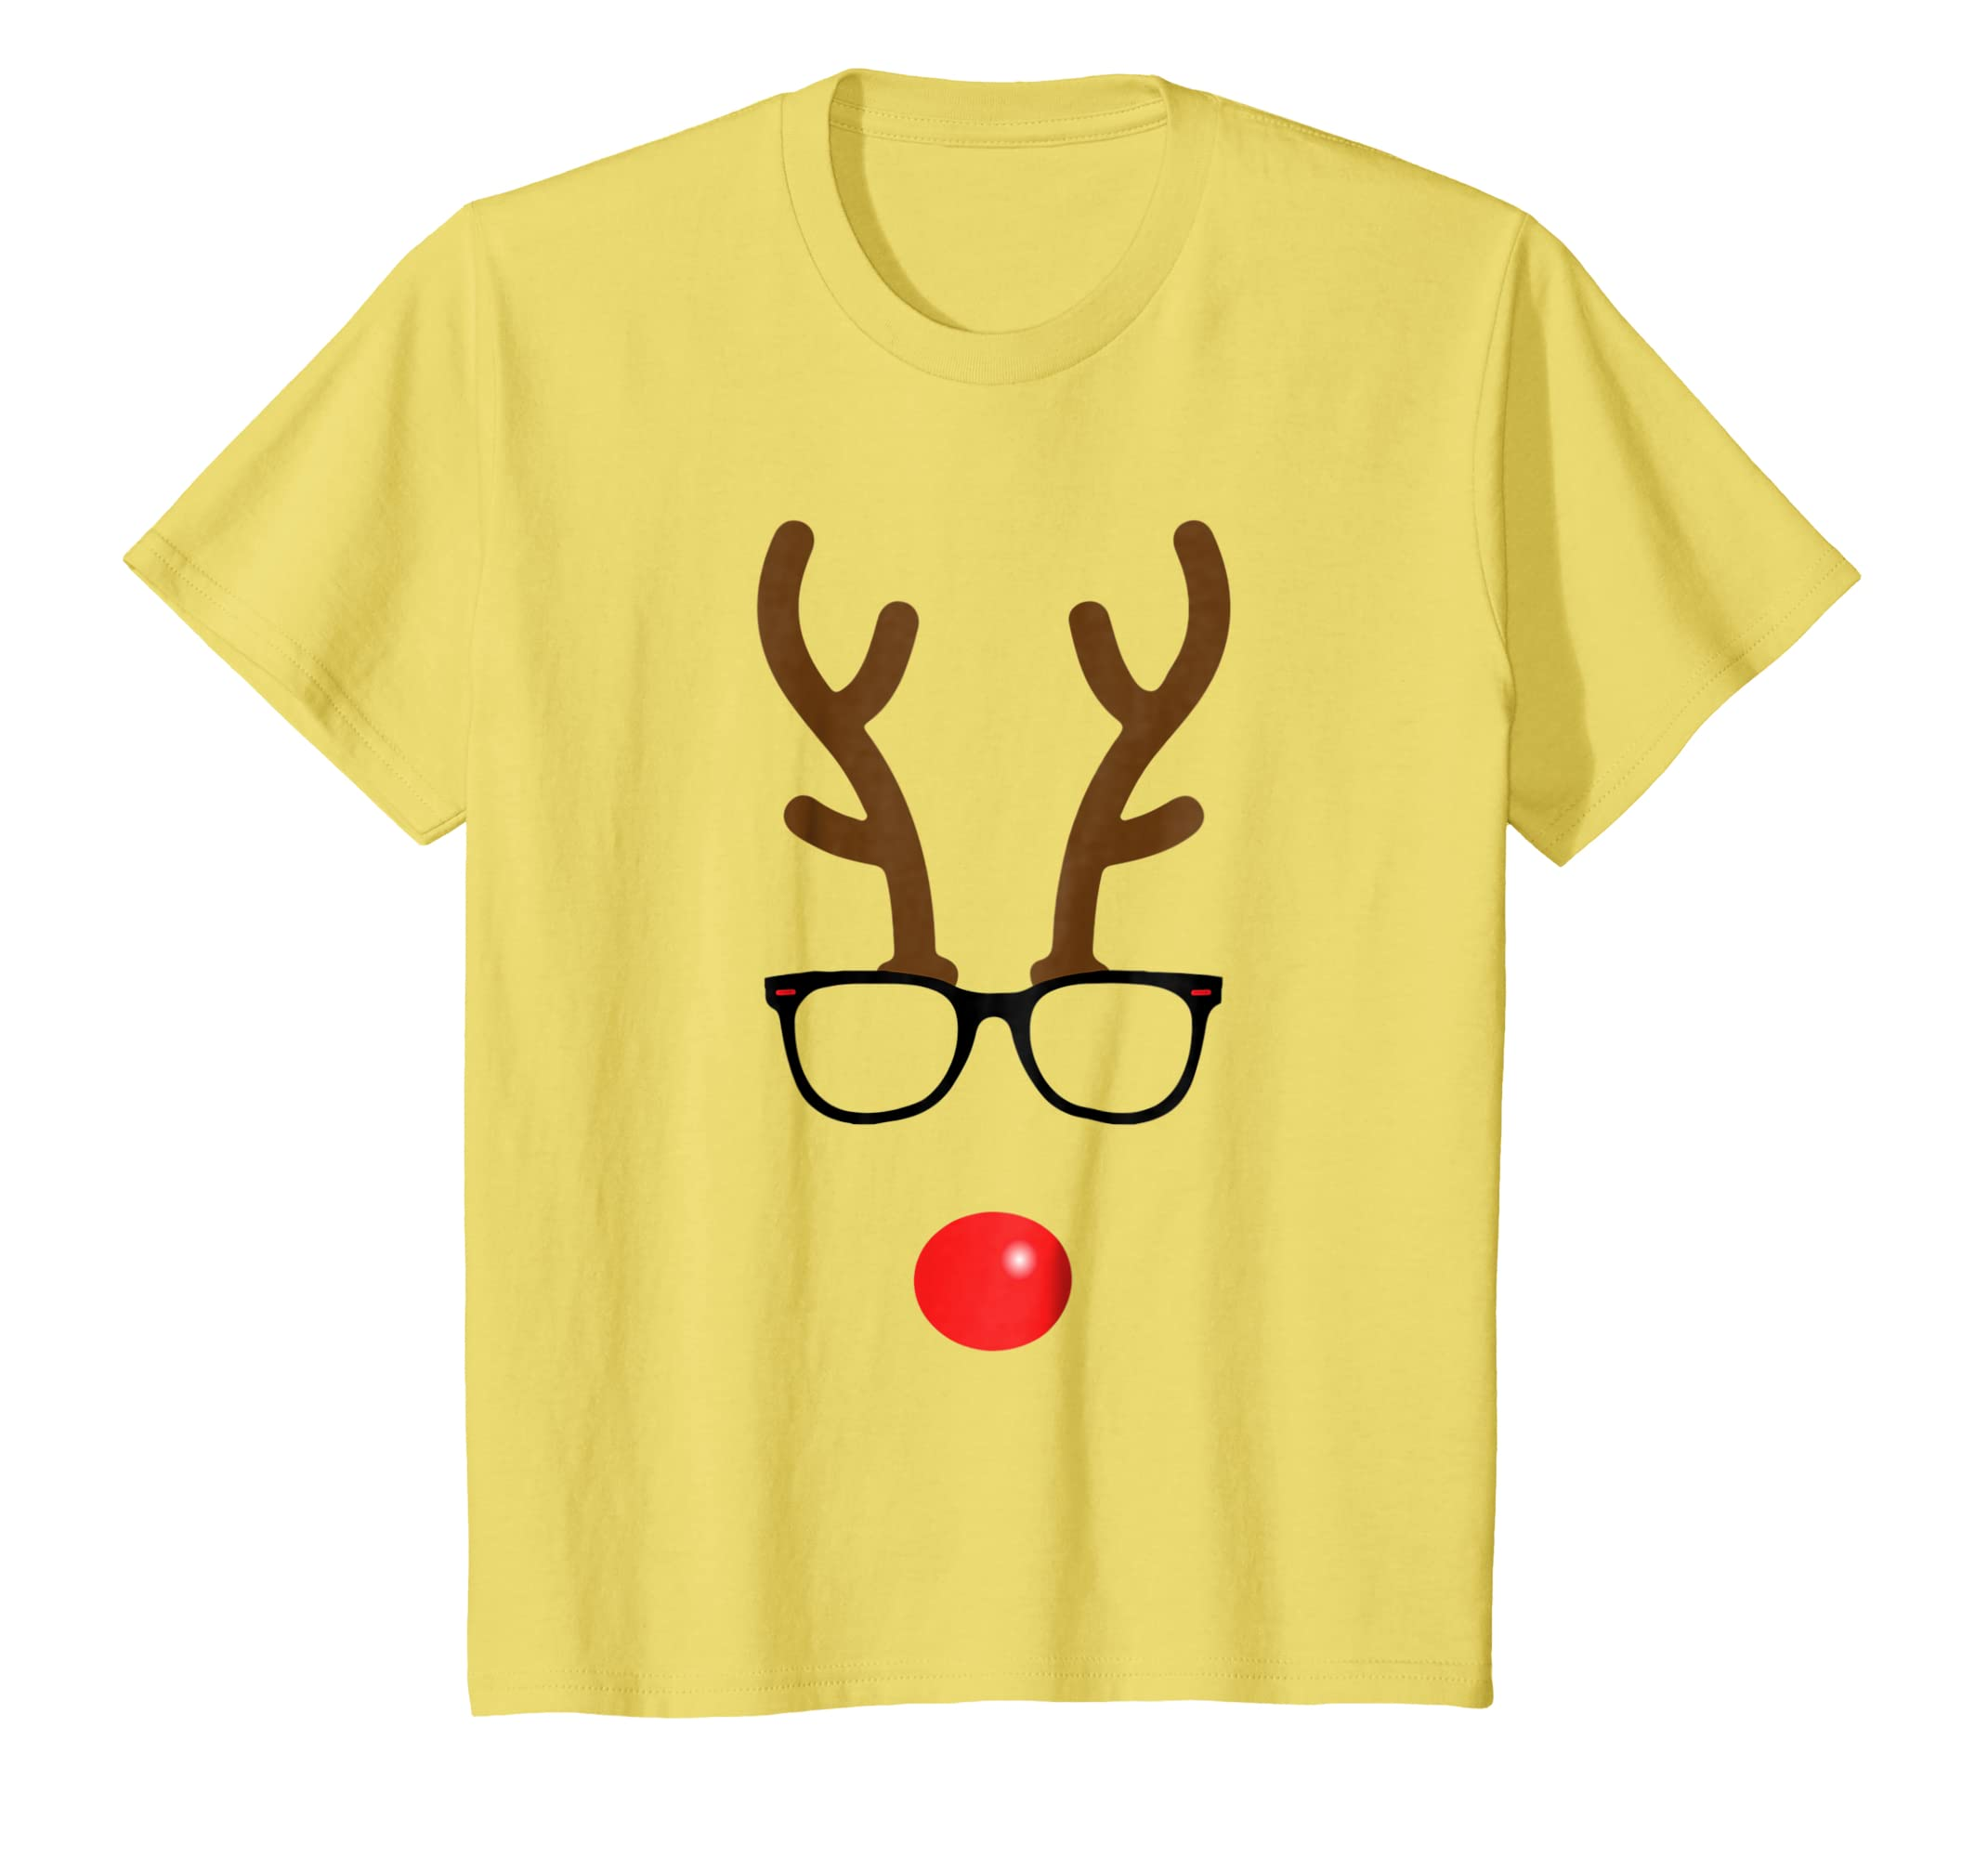 Amazon.com: Rudolph The Red Nose Reindeer Nerd Geek Christmas T-Shirt: Clothing